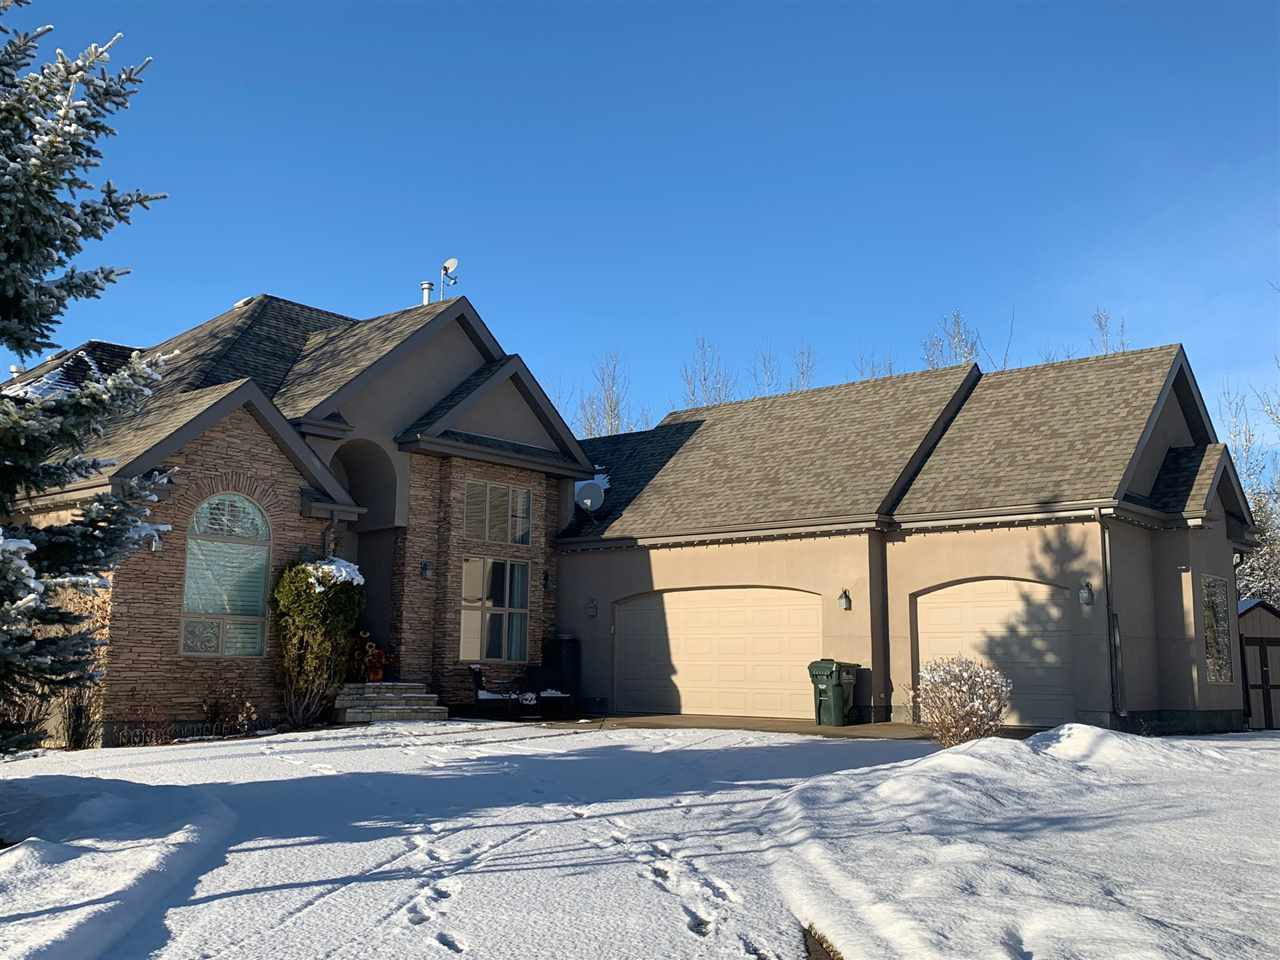 Main Photo: 43 51025 RNG RD 222 Road: Rural Strathcona County House for sale : MLS®# E4186435